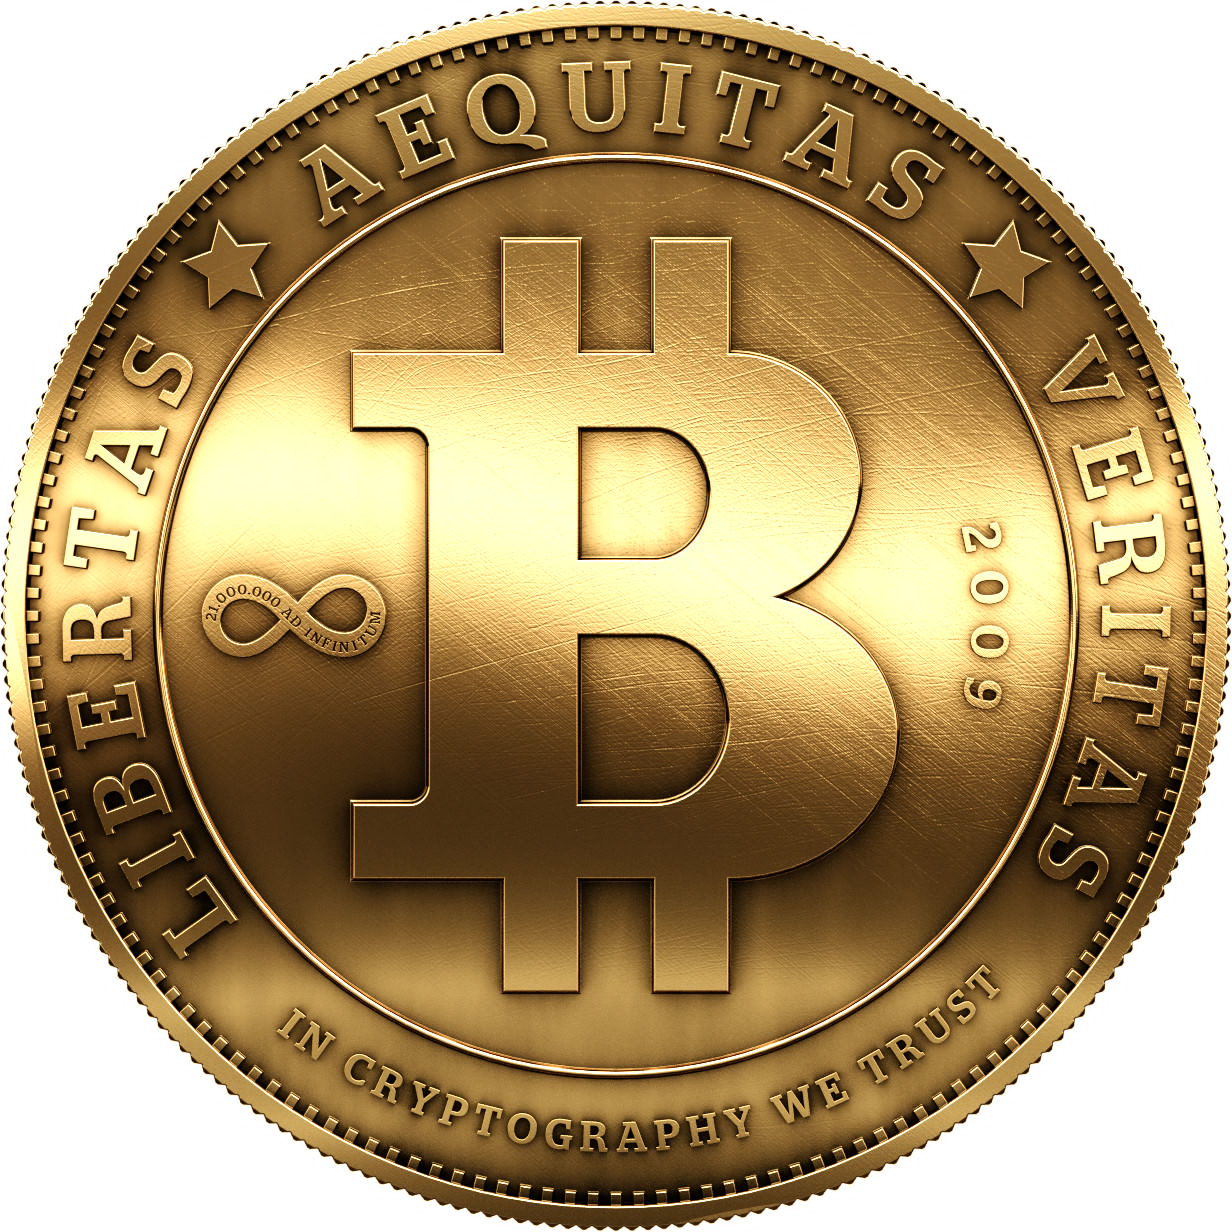 What You Need To Know About BitCoins